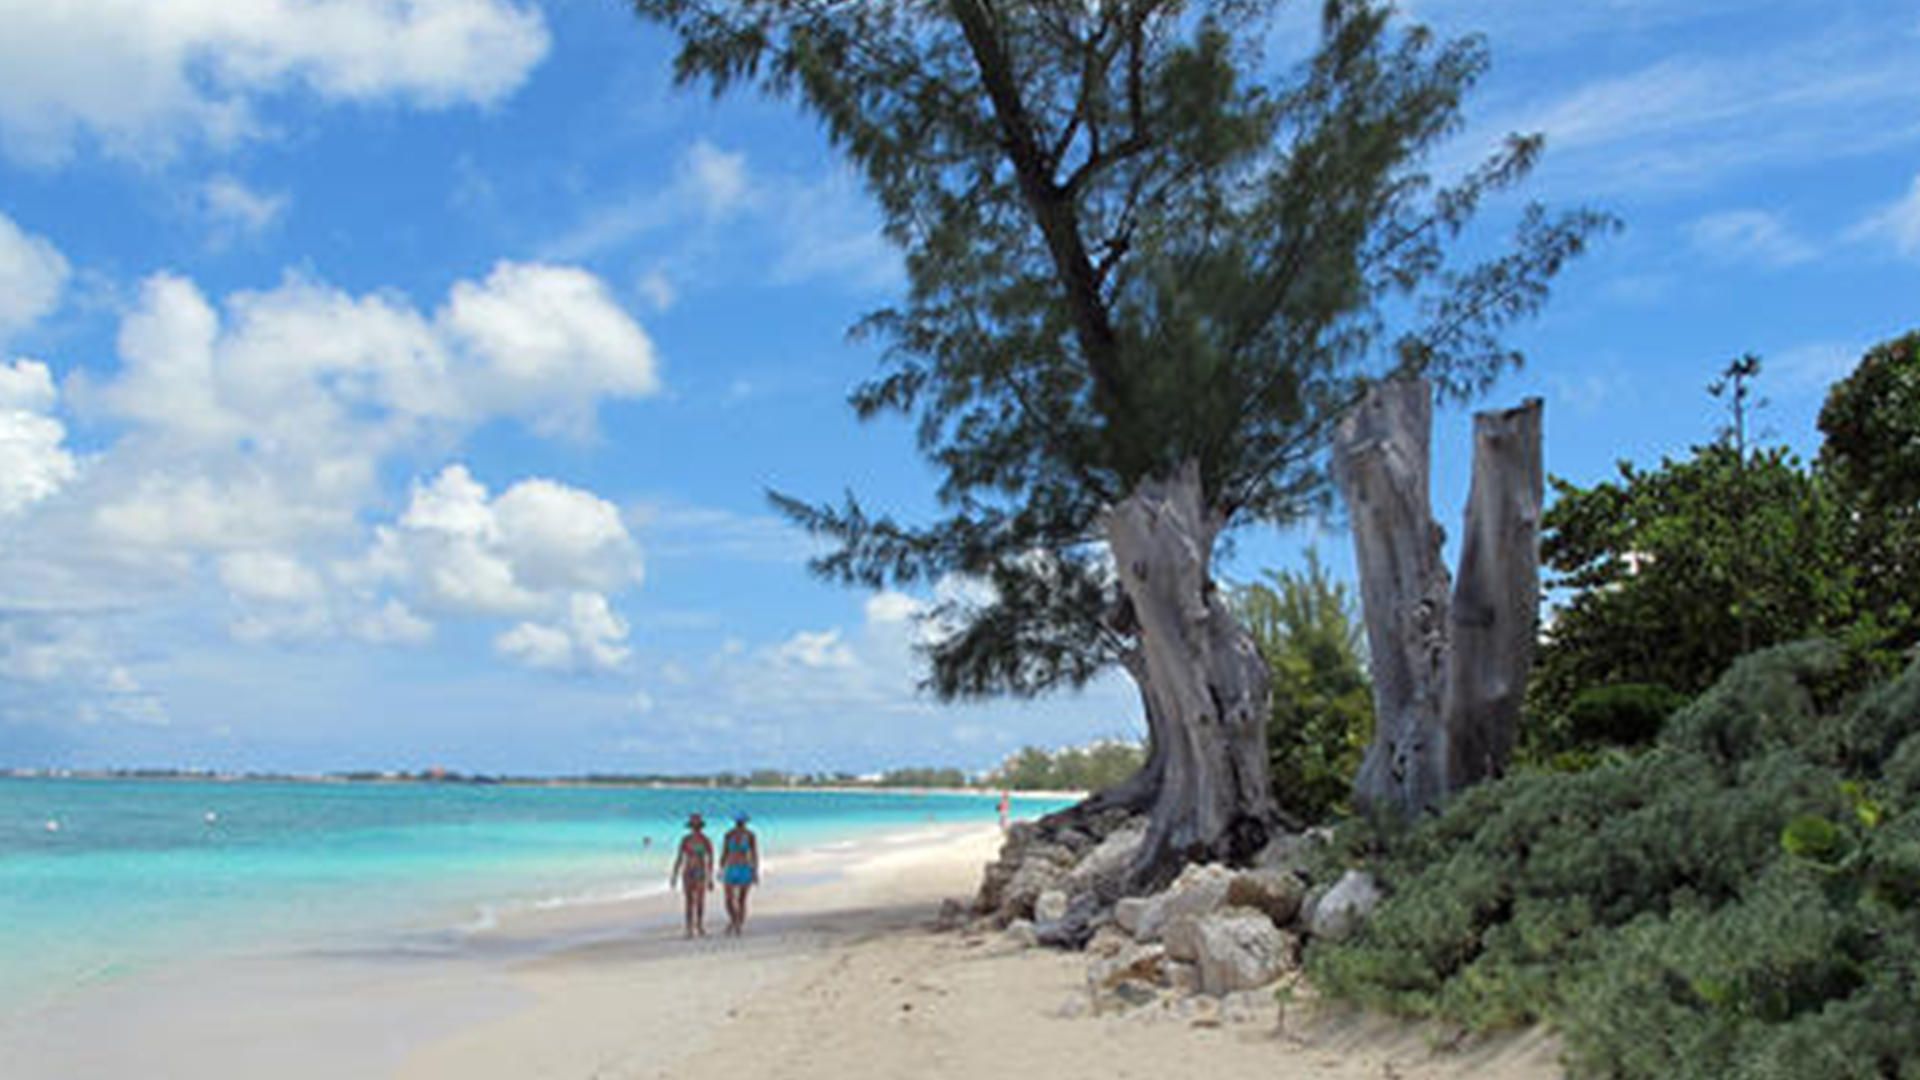 COVID-19 Low – COVID-19 in the Cayman Islands